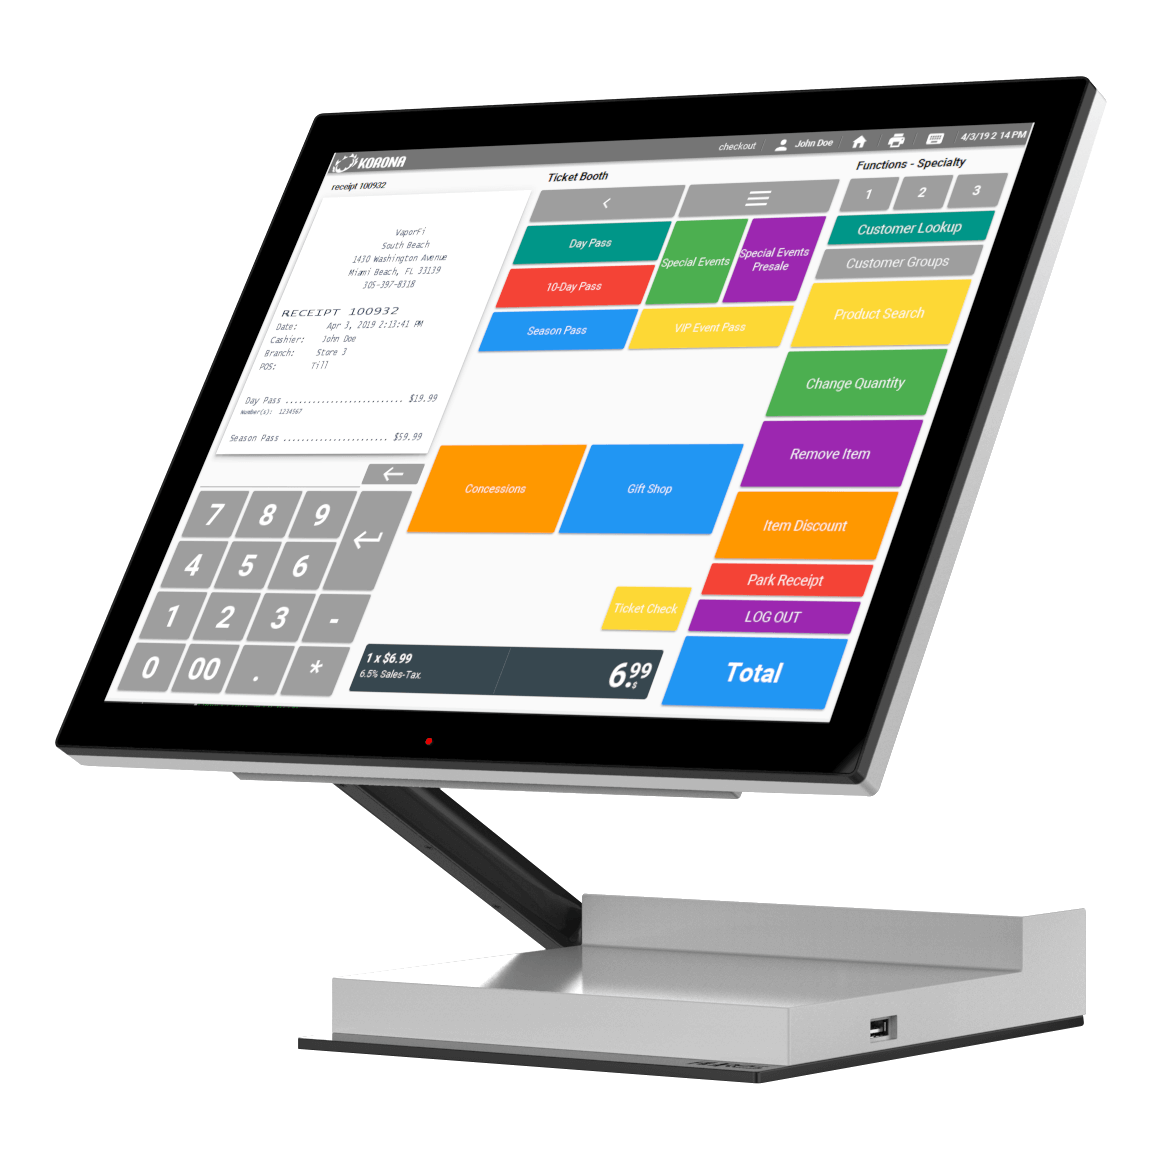 POS system desktop with product screen